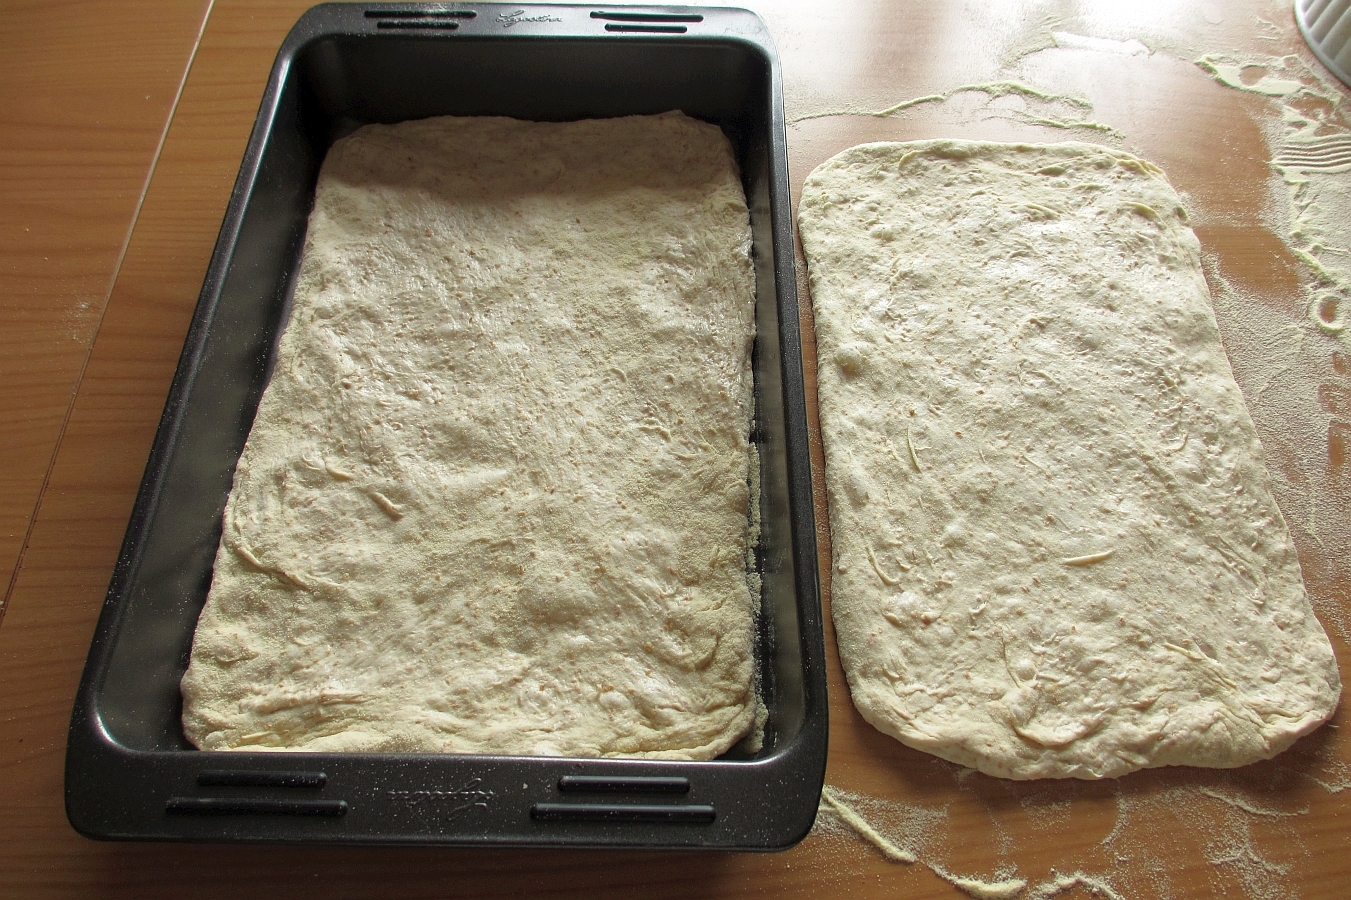 Ingredienti dell'impasto per la Pizza rustica ripiena